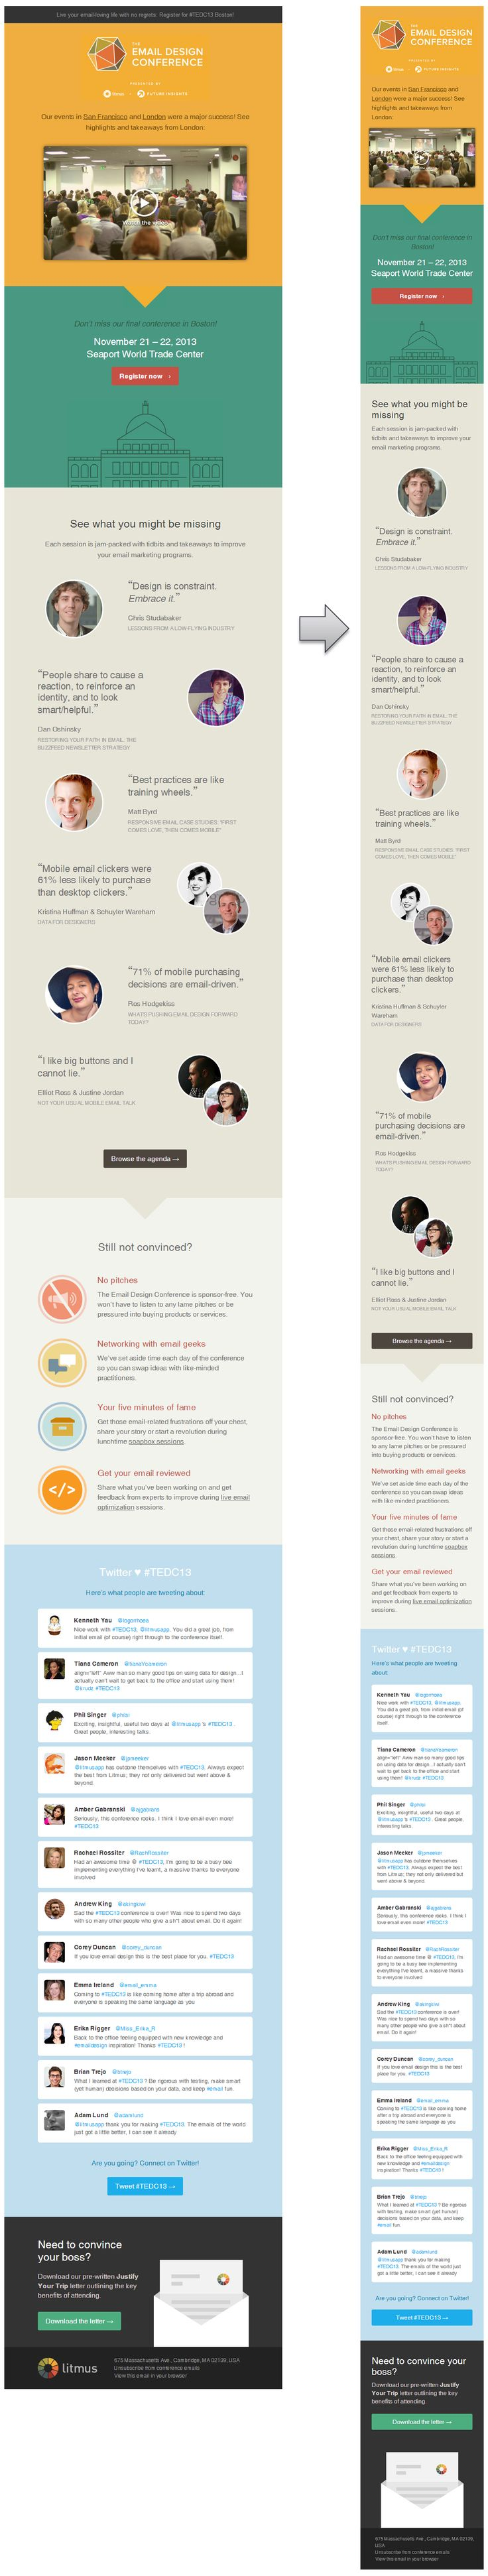 Responsive Email Design from Litmus